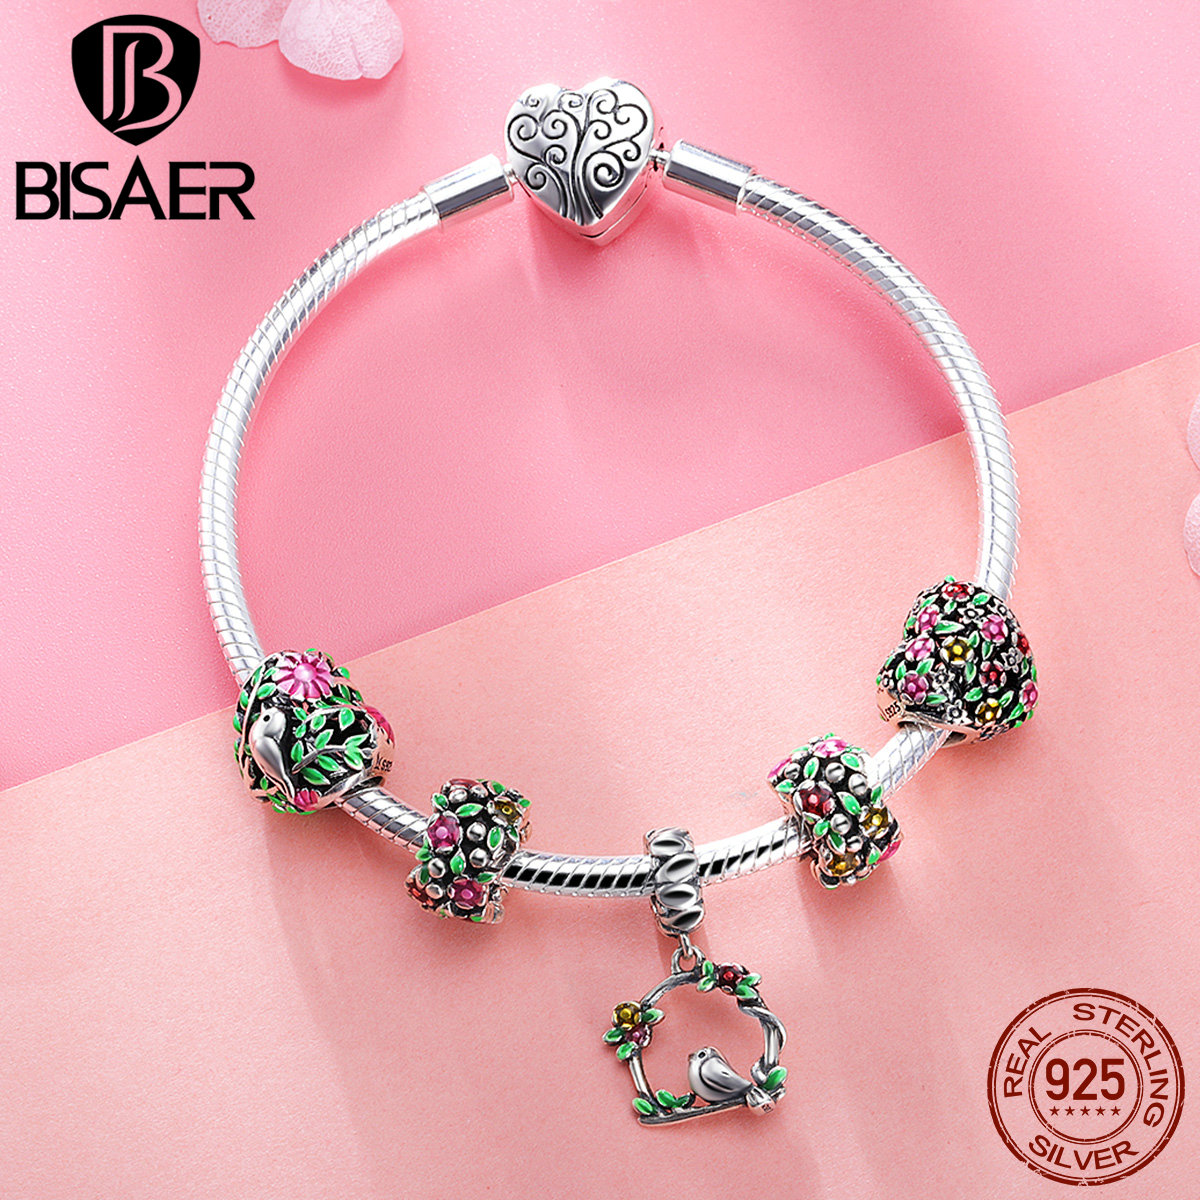 BISAER 2018 New 925 Sterling Silver Bird In Bush Heart Green Summer Collection Charm Bracelet Female Brand Beads Bangle HSB804 bisaer 7pcs 925 sterling silver heart key and locket heart pendant brand charm bracelet for women wedding silver bangle gxb811